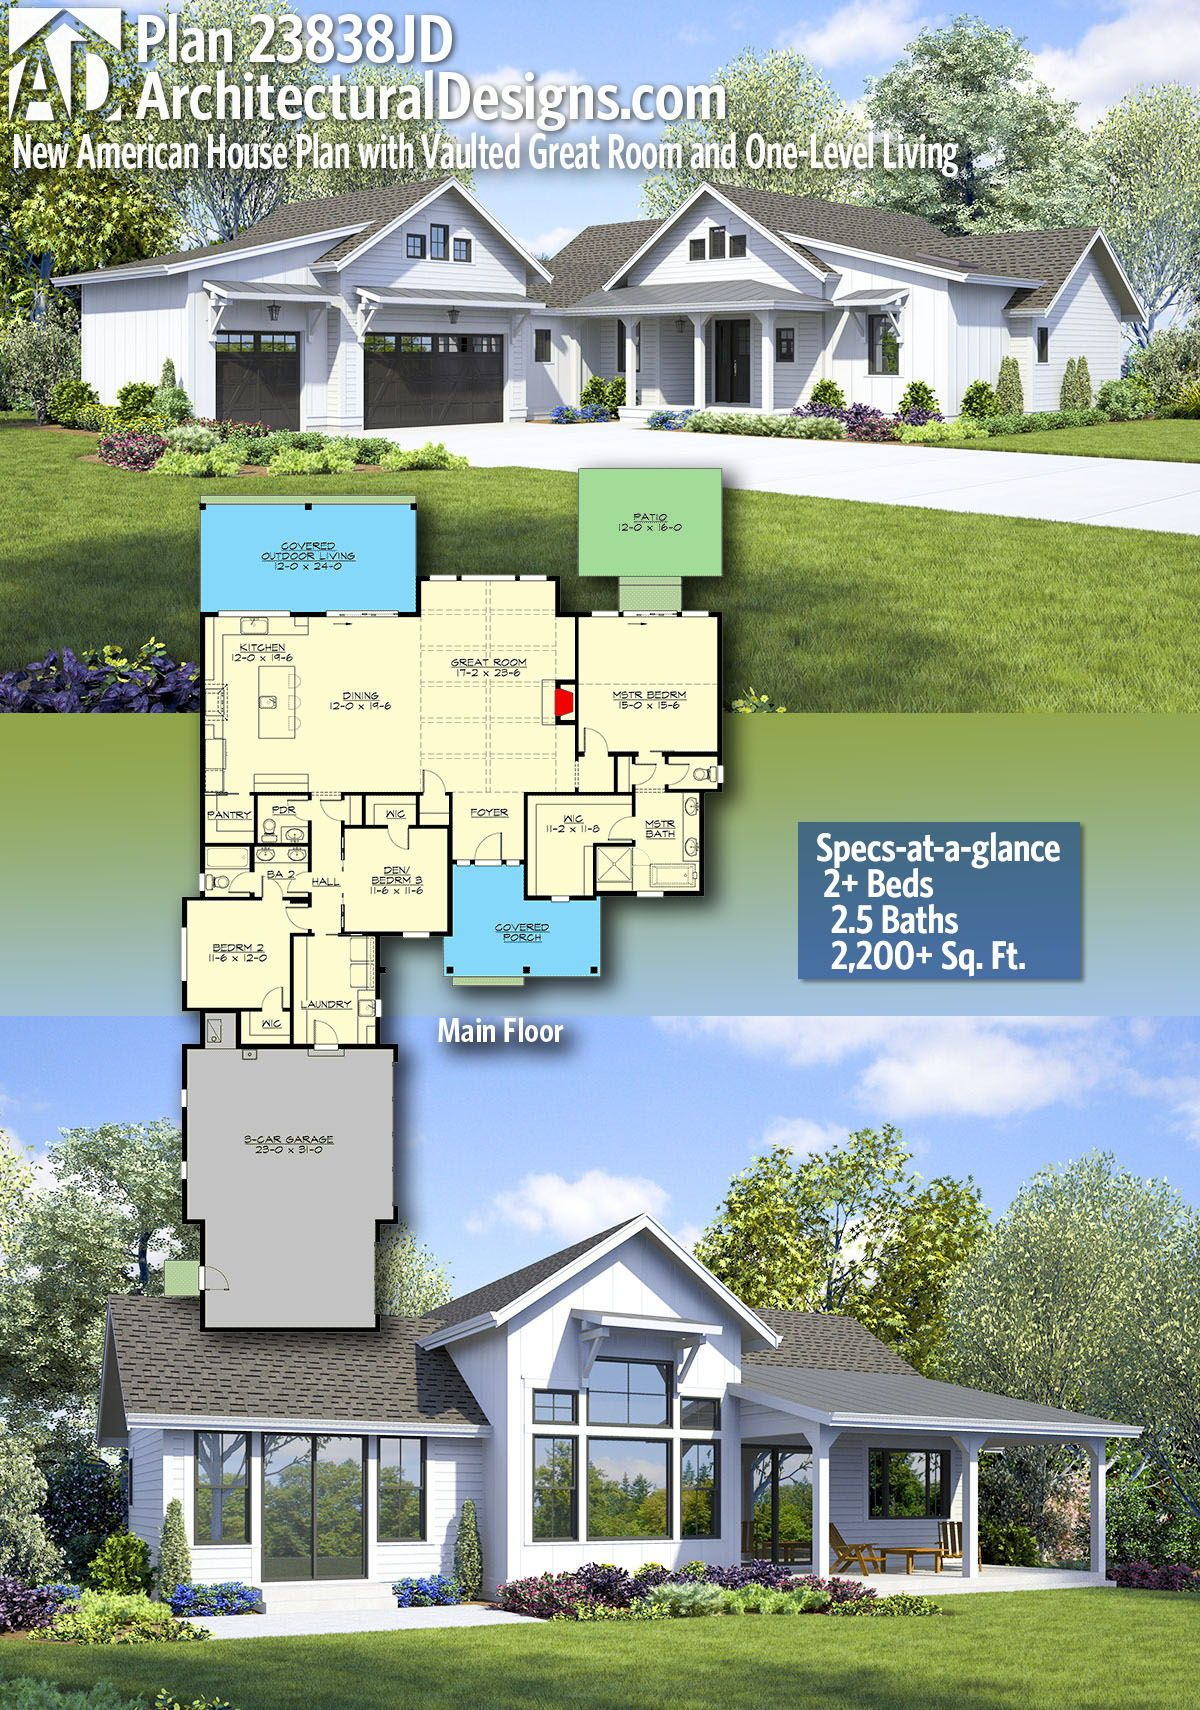 Plan 23838jd New American House Plan With Vaulted Great Room And One Level Living Beautiful House Plans Country House Plans American Houses